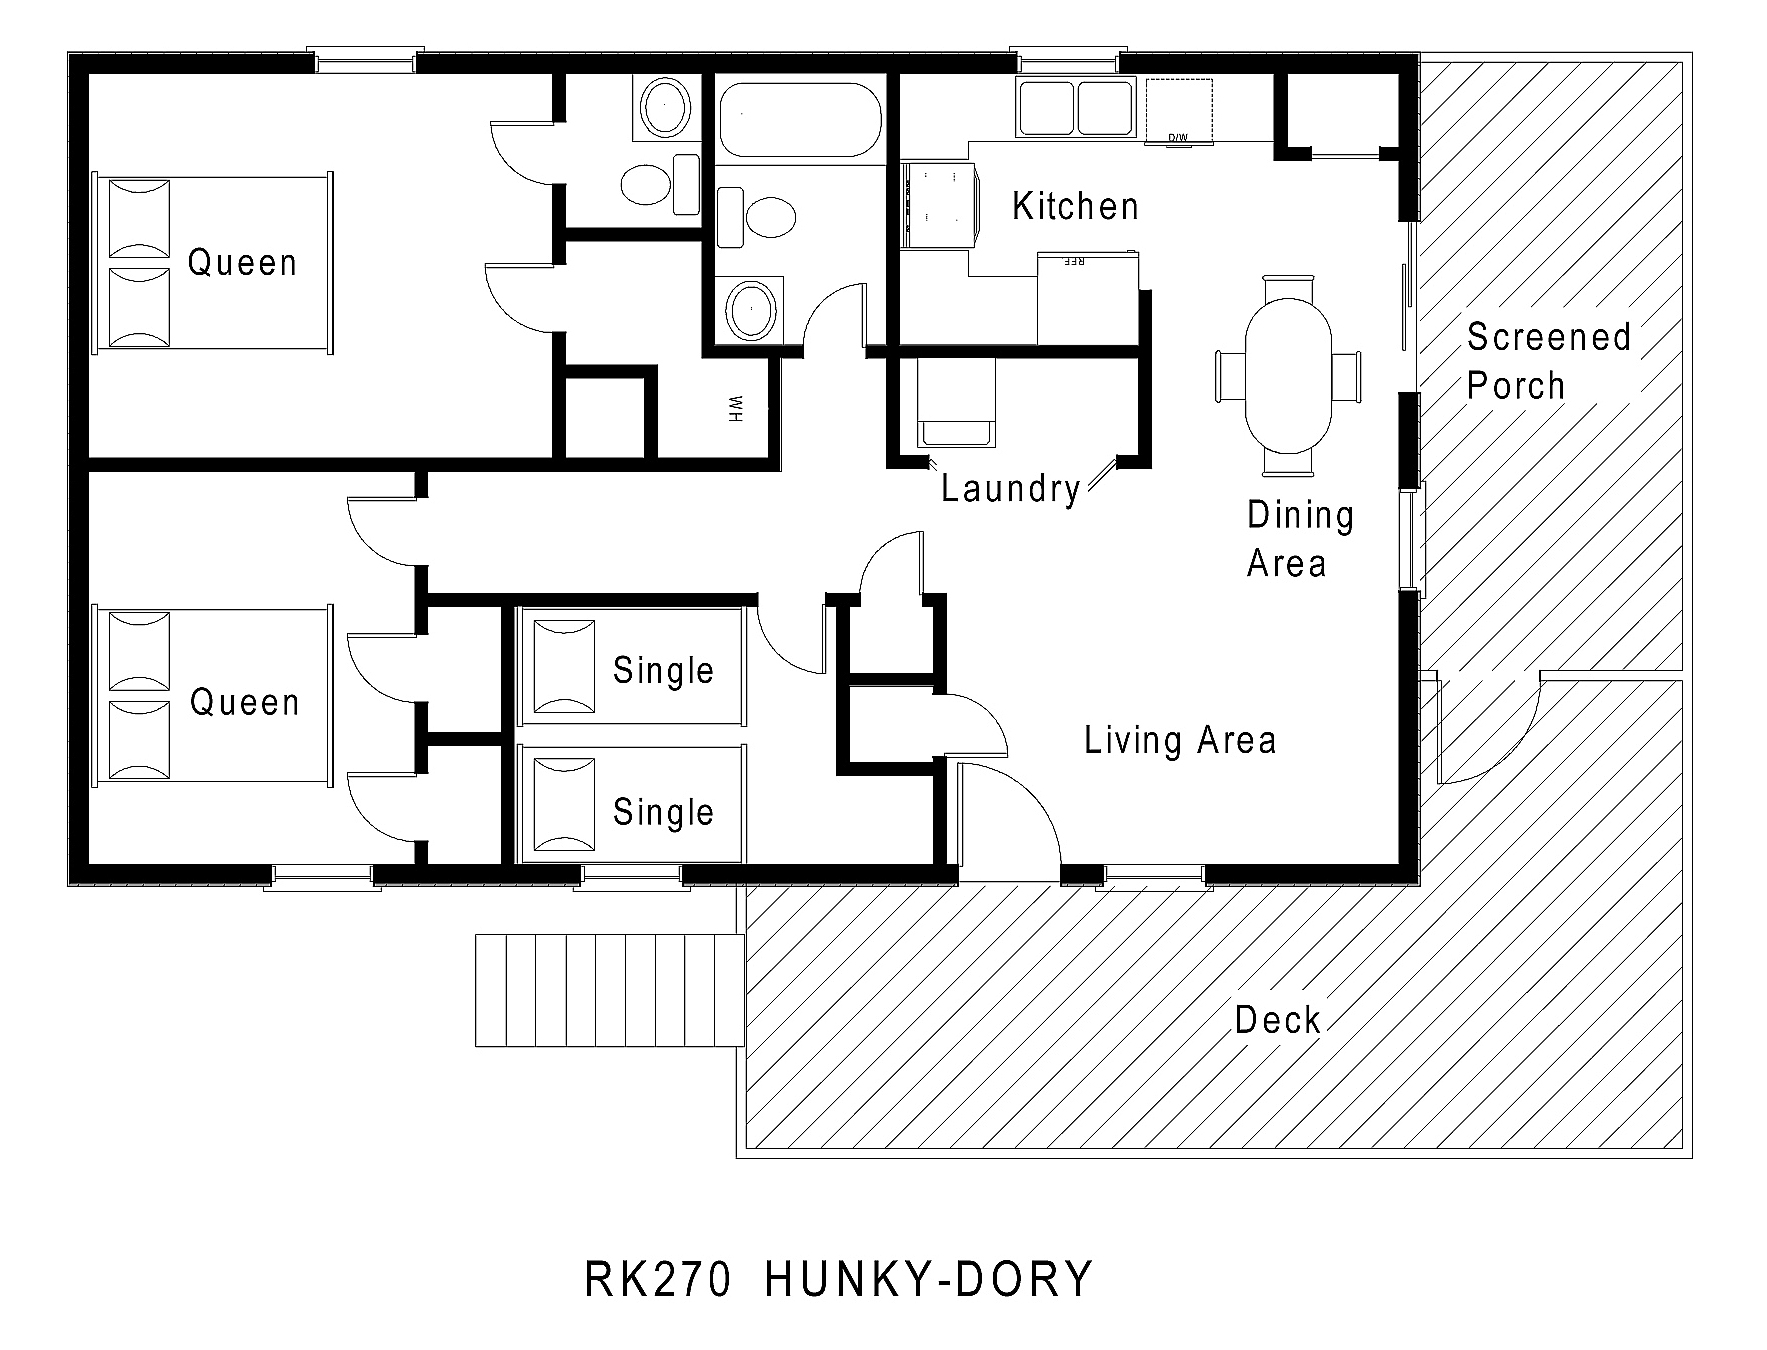 Hunky dory hatteras rental midget realty for One floor house plans